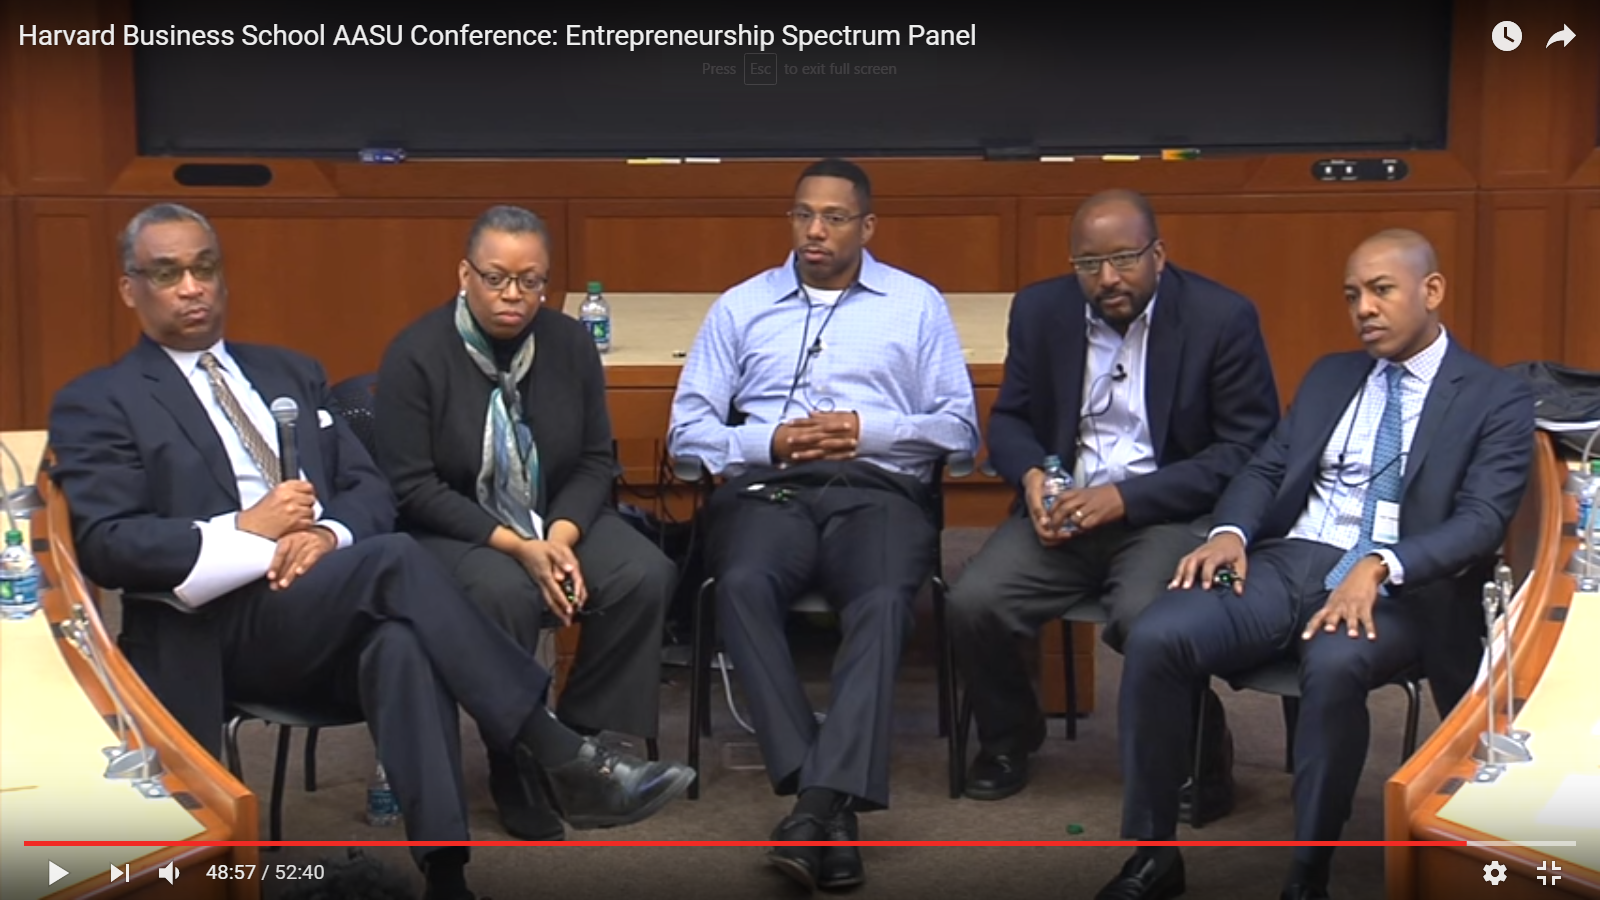 http://www.theblackrealestateschool.com/blog/539276/harvard-business-school-aasu-conference-entrepreneurship-spectrum-panel